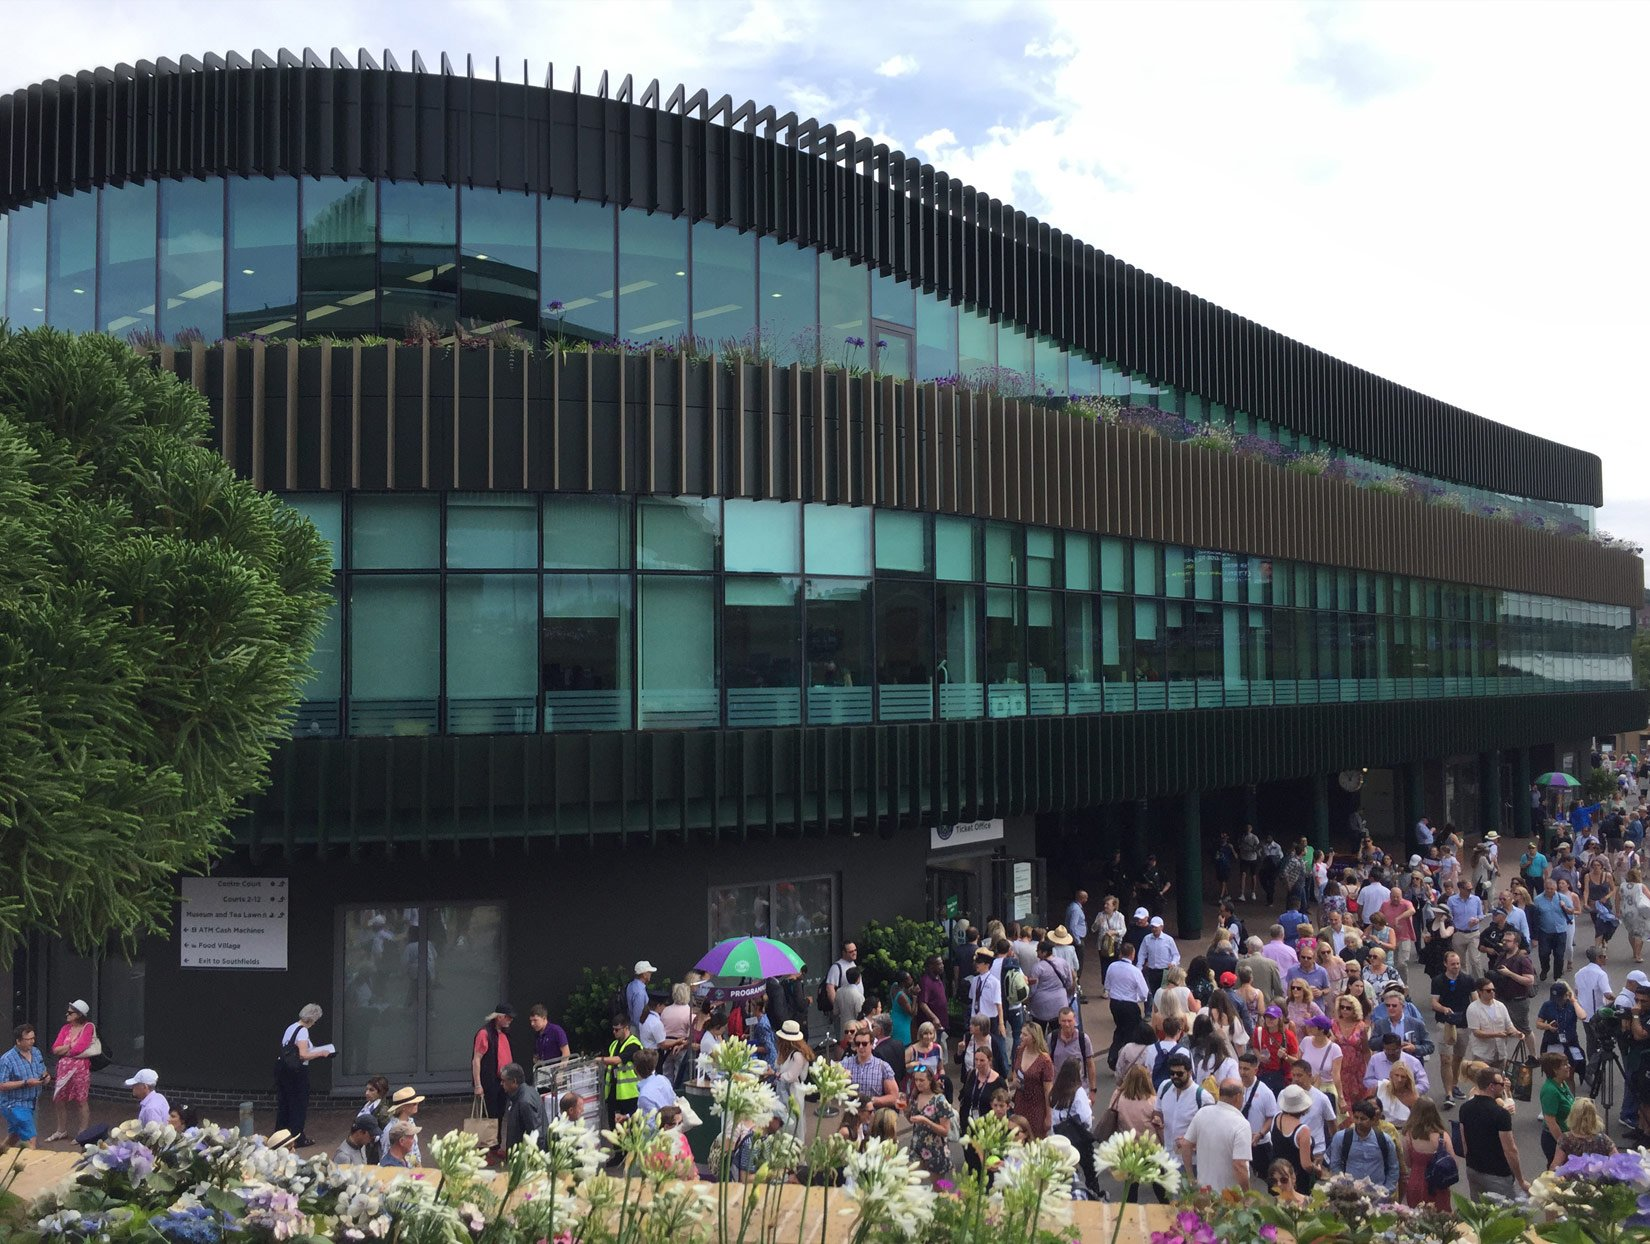 The Museum Building, AELTC, Wimbledon, During the championship